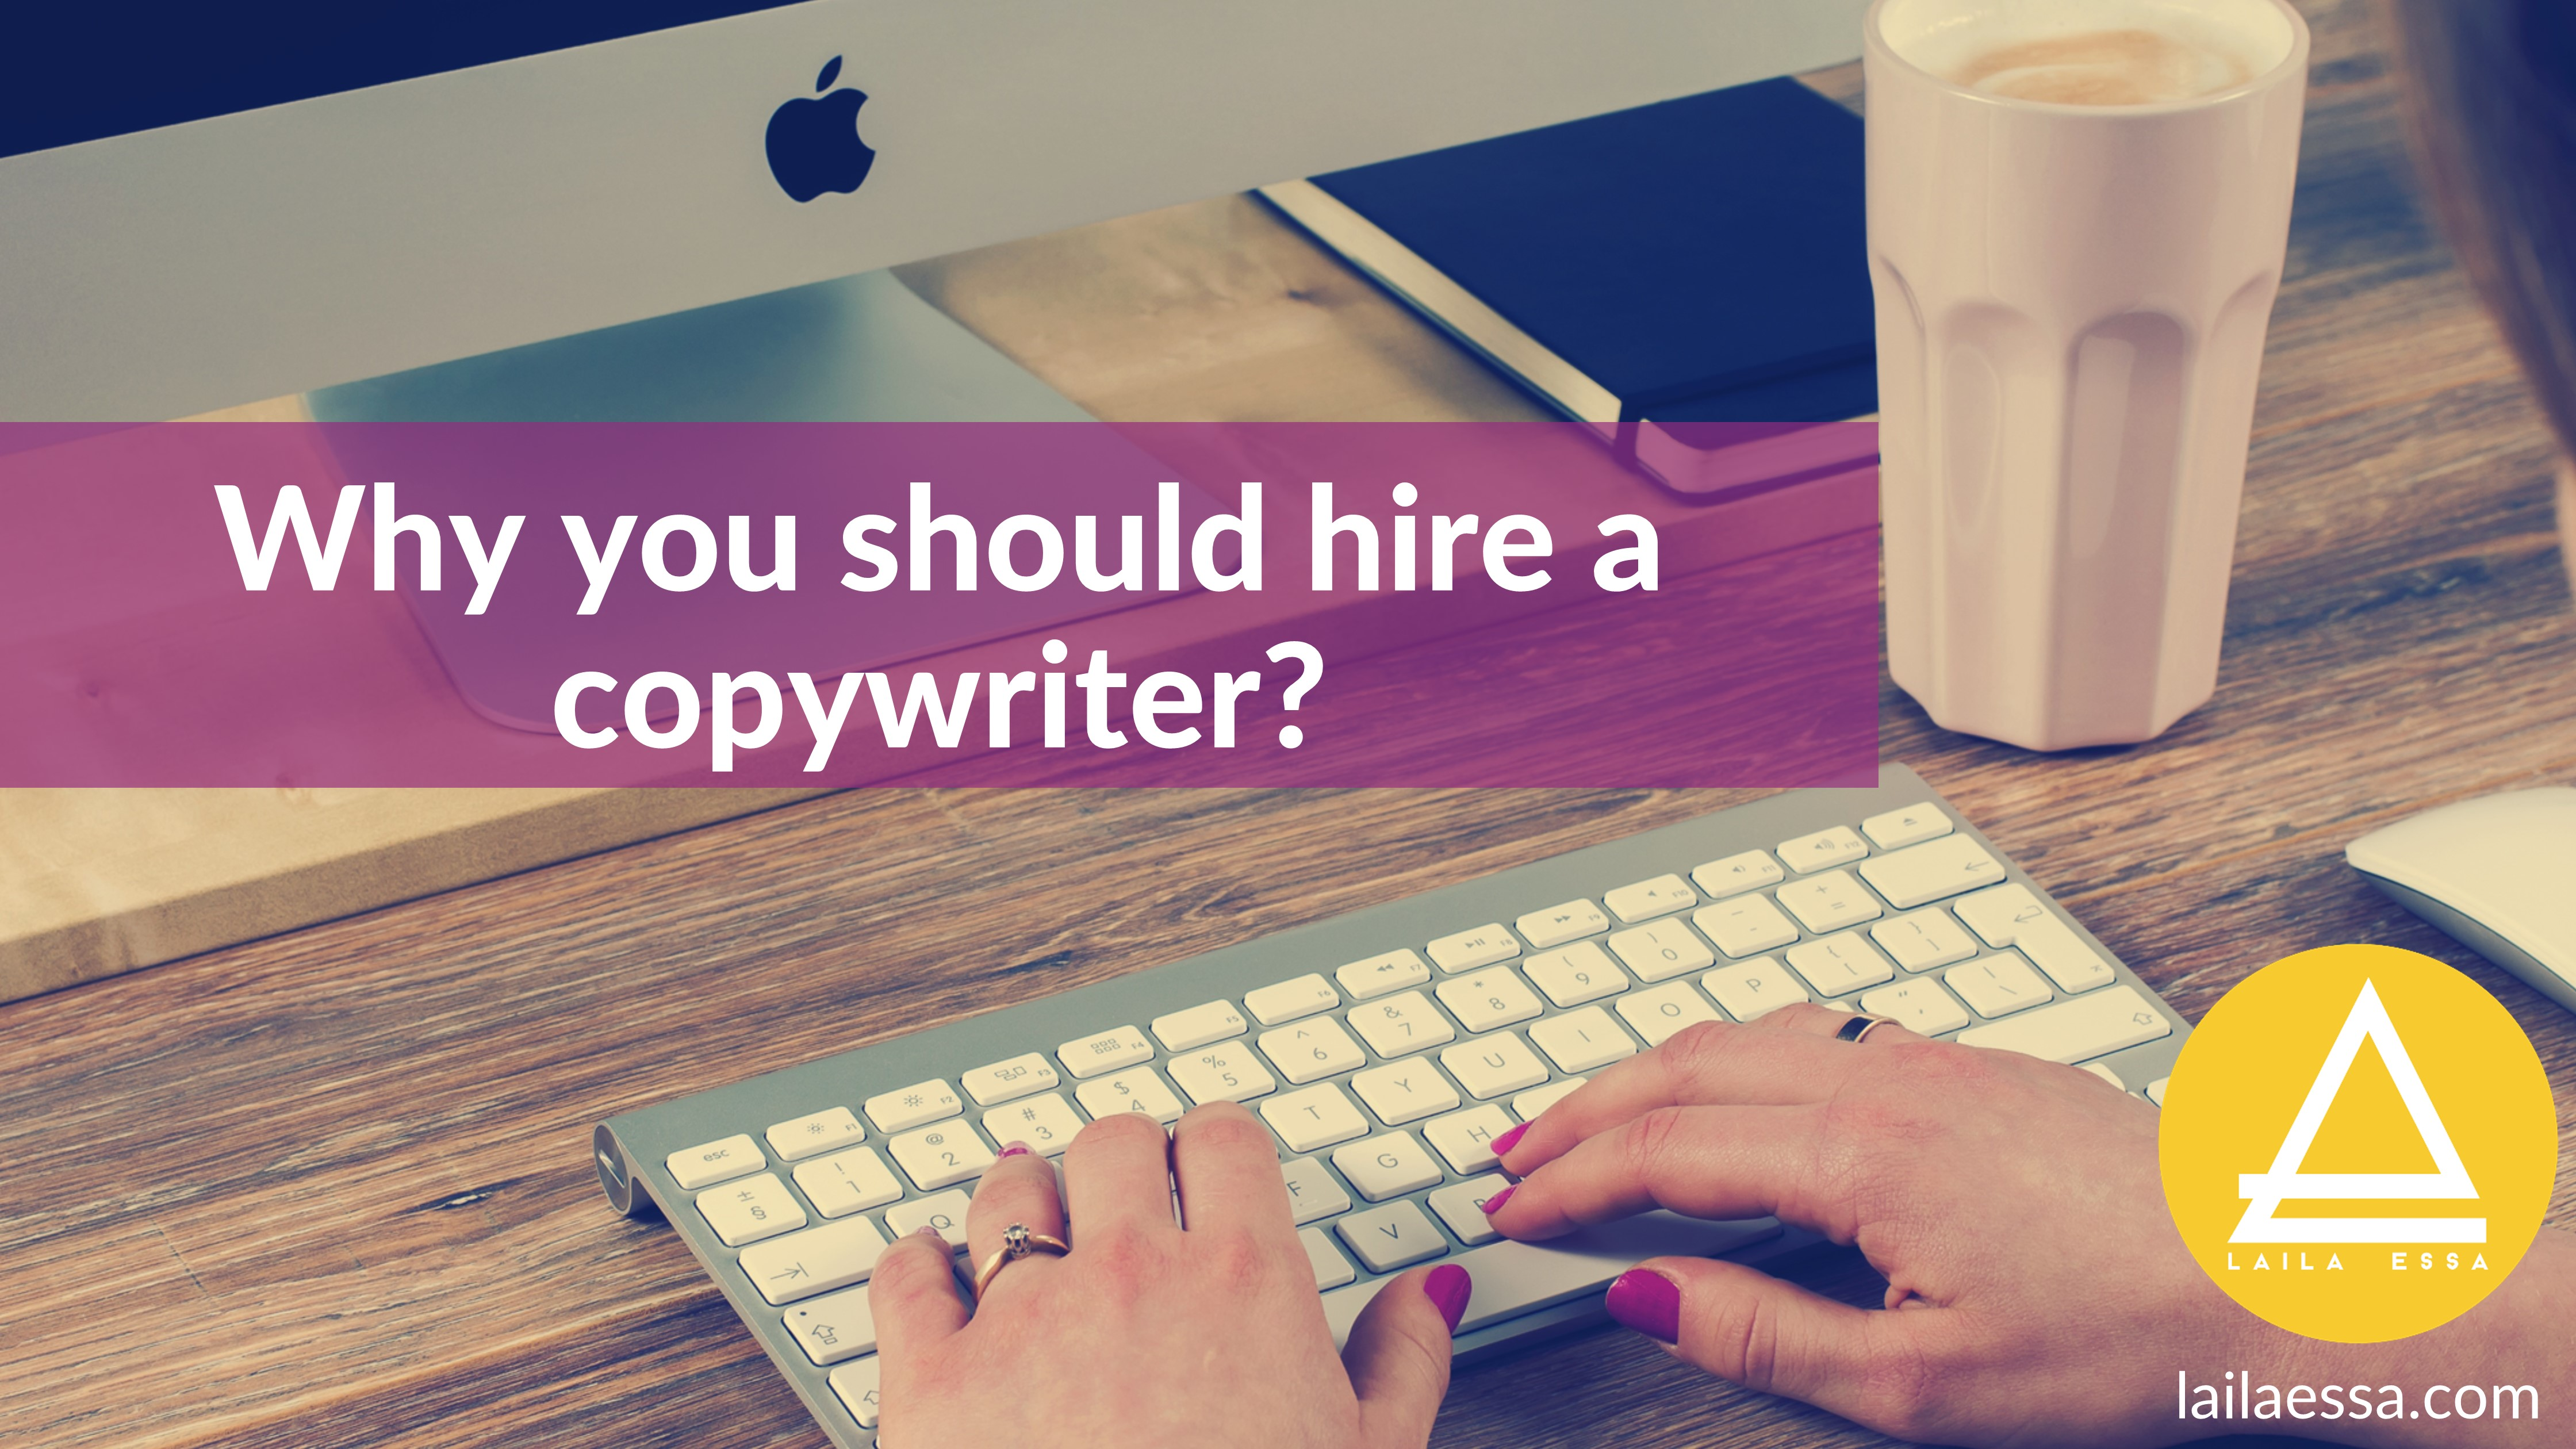 Why you should hire a copywriter?